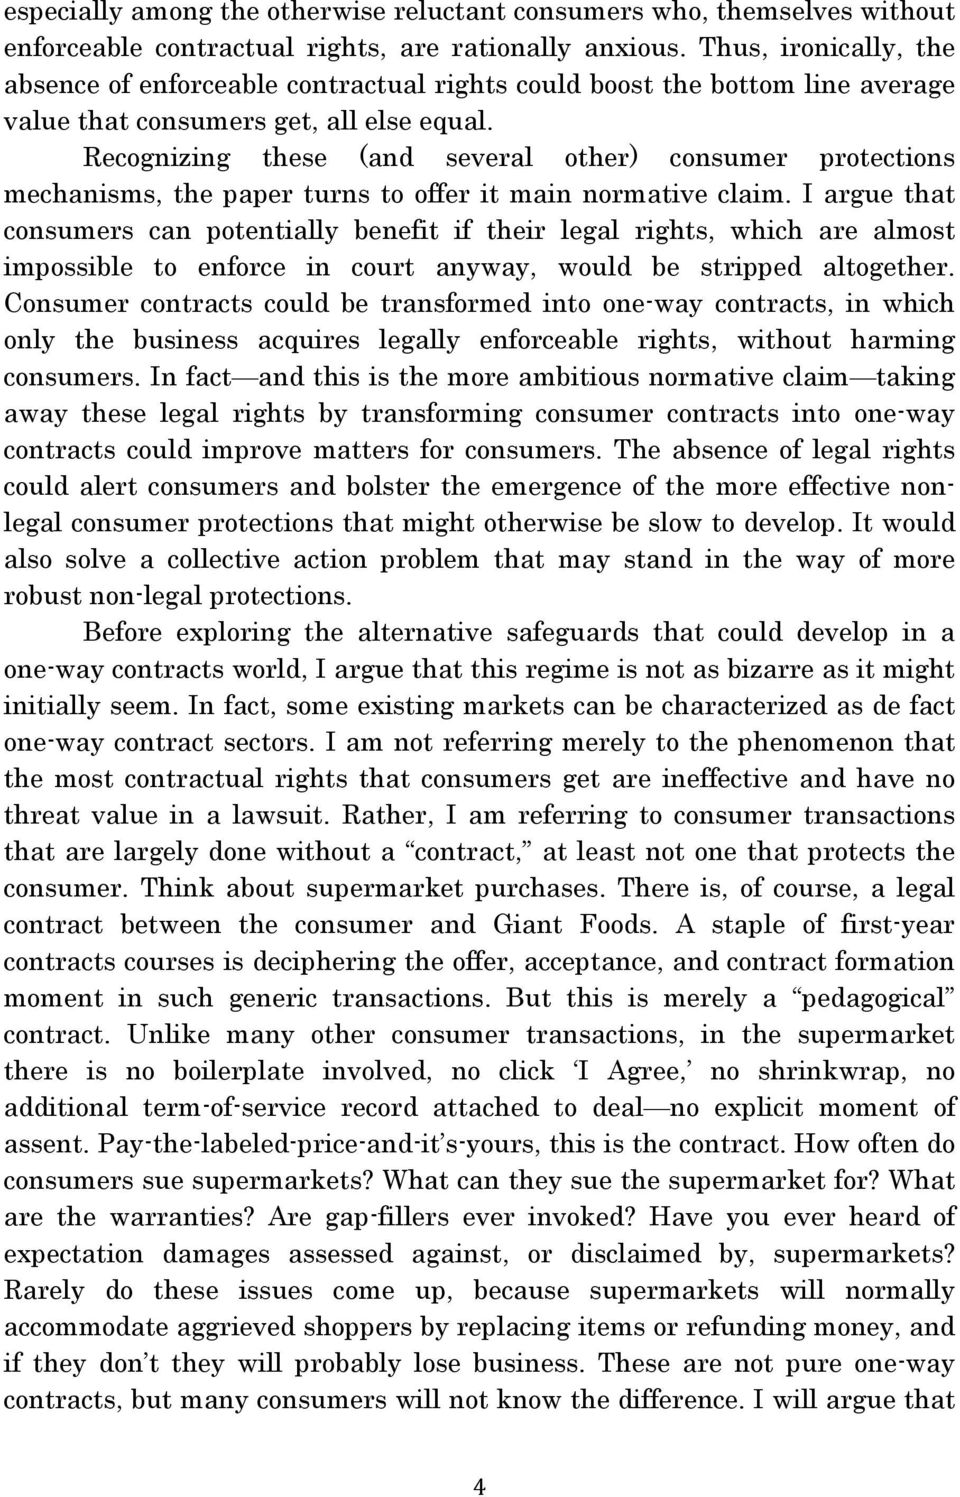 Recognizing these (and several other) consumer protections mechanisms, the paper turns to offer it main normative claim.